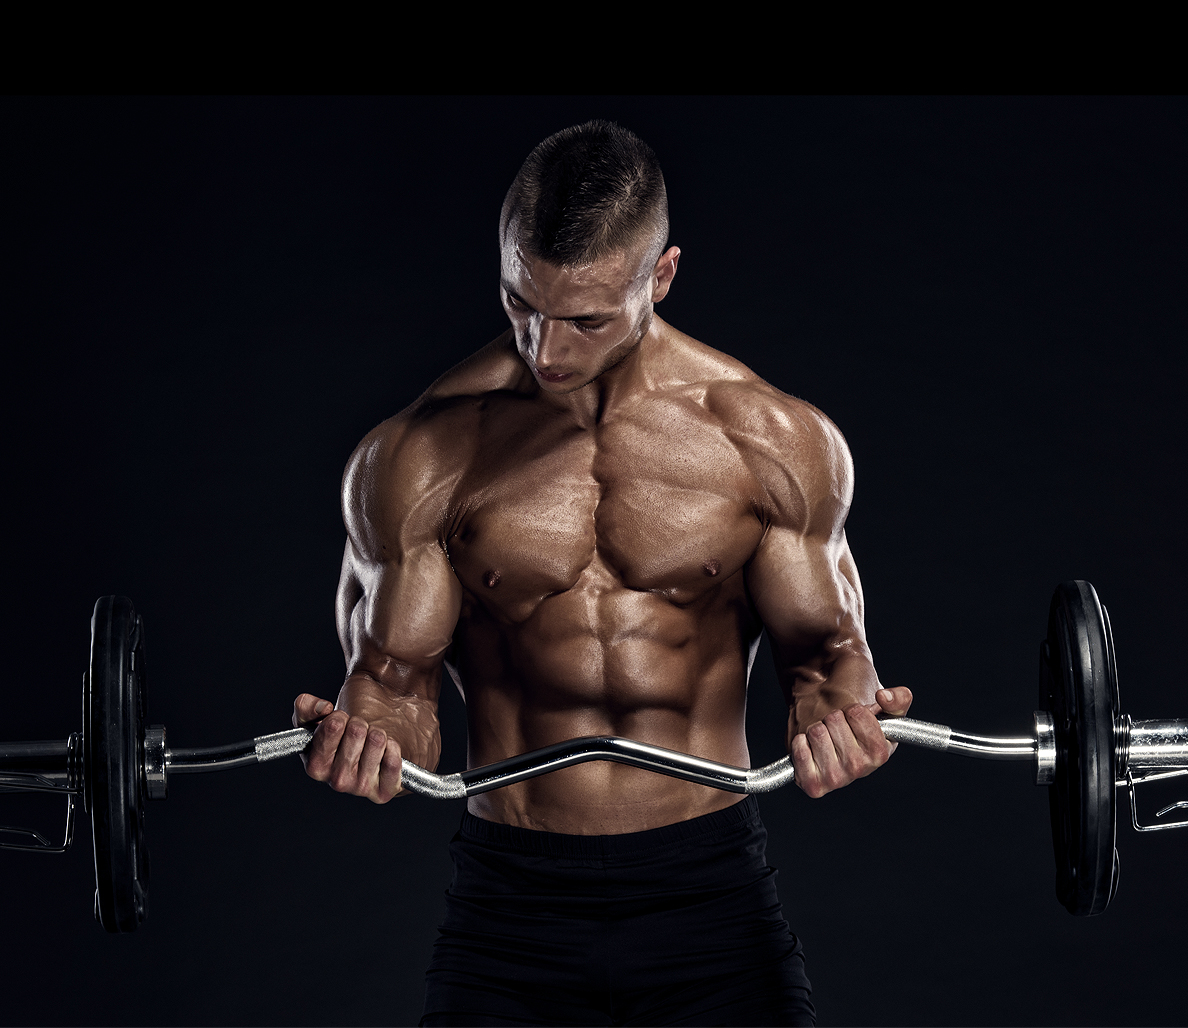 How to Get Bigger Arms: 2 Techniques You Need to Know